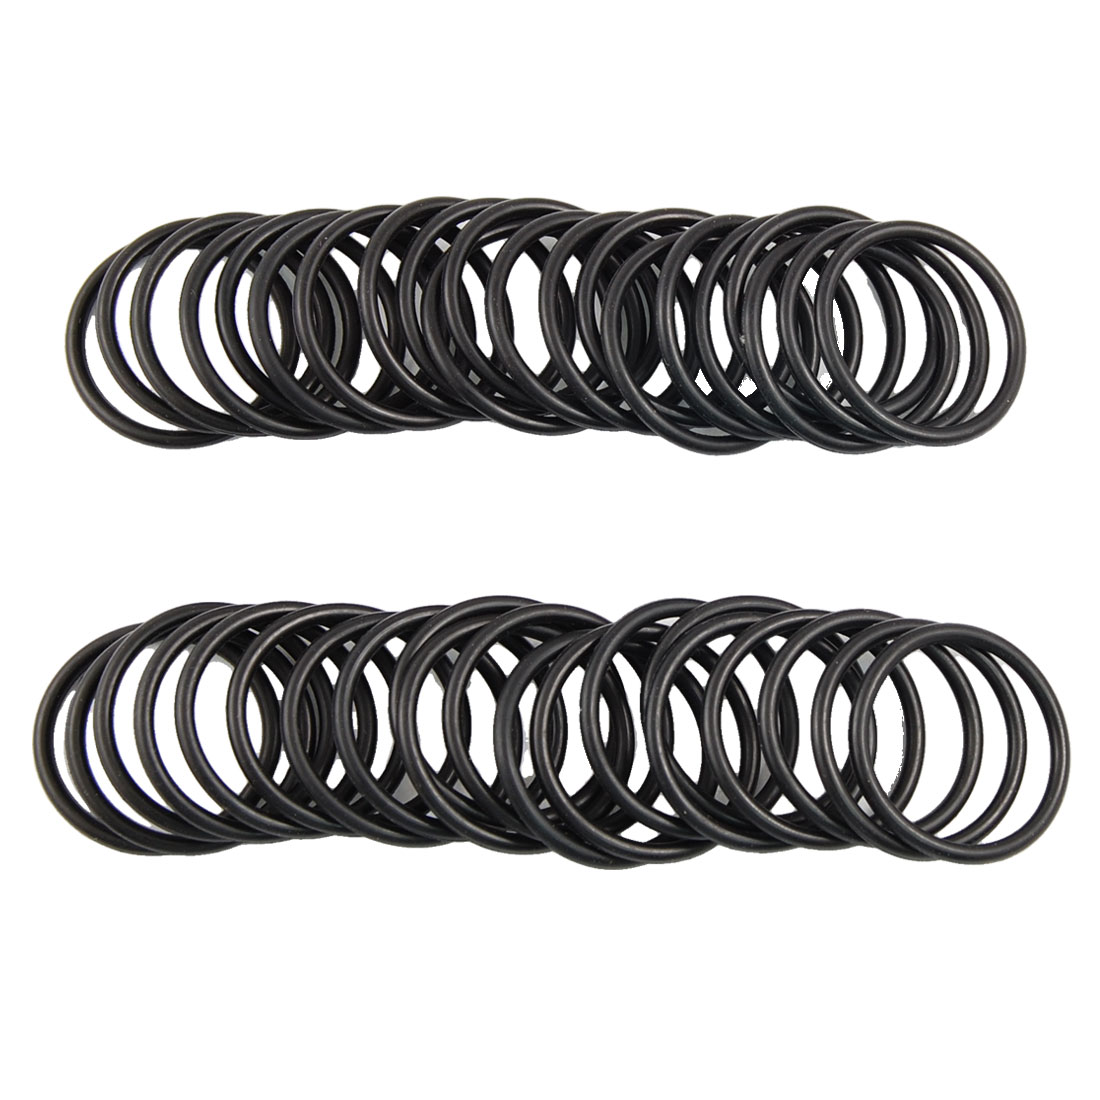 50 Pcs 24mm OD 2.5mm Thickness Nitrile Rubber O-ring Oil Seal Gaskets